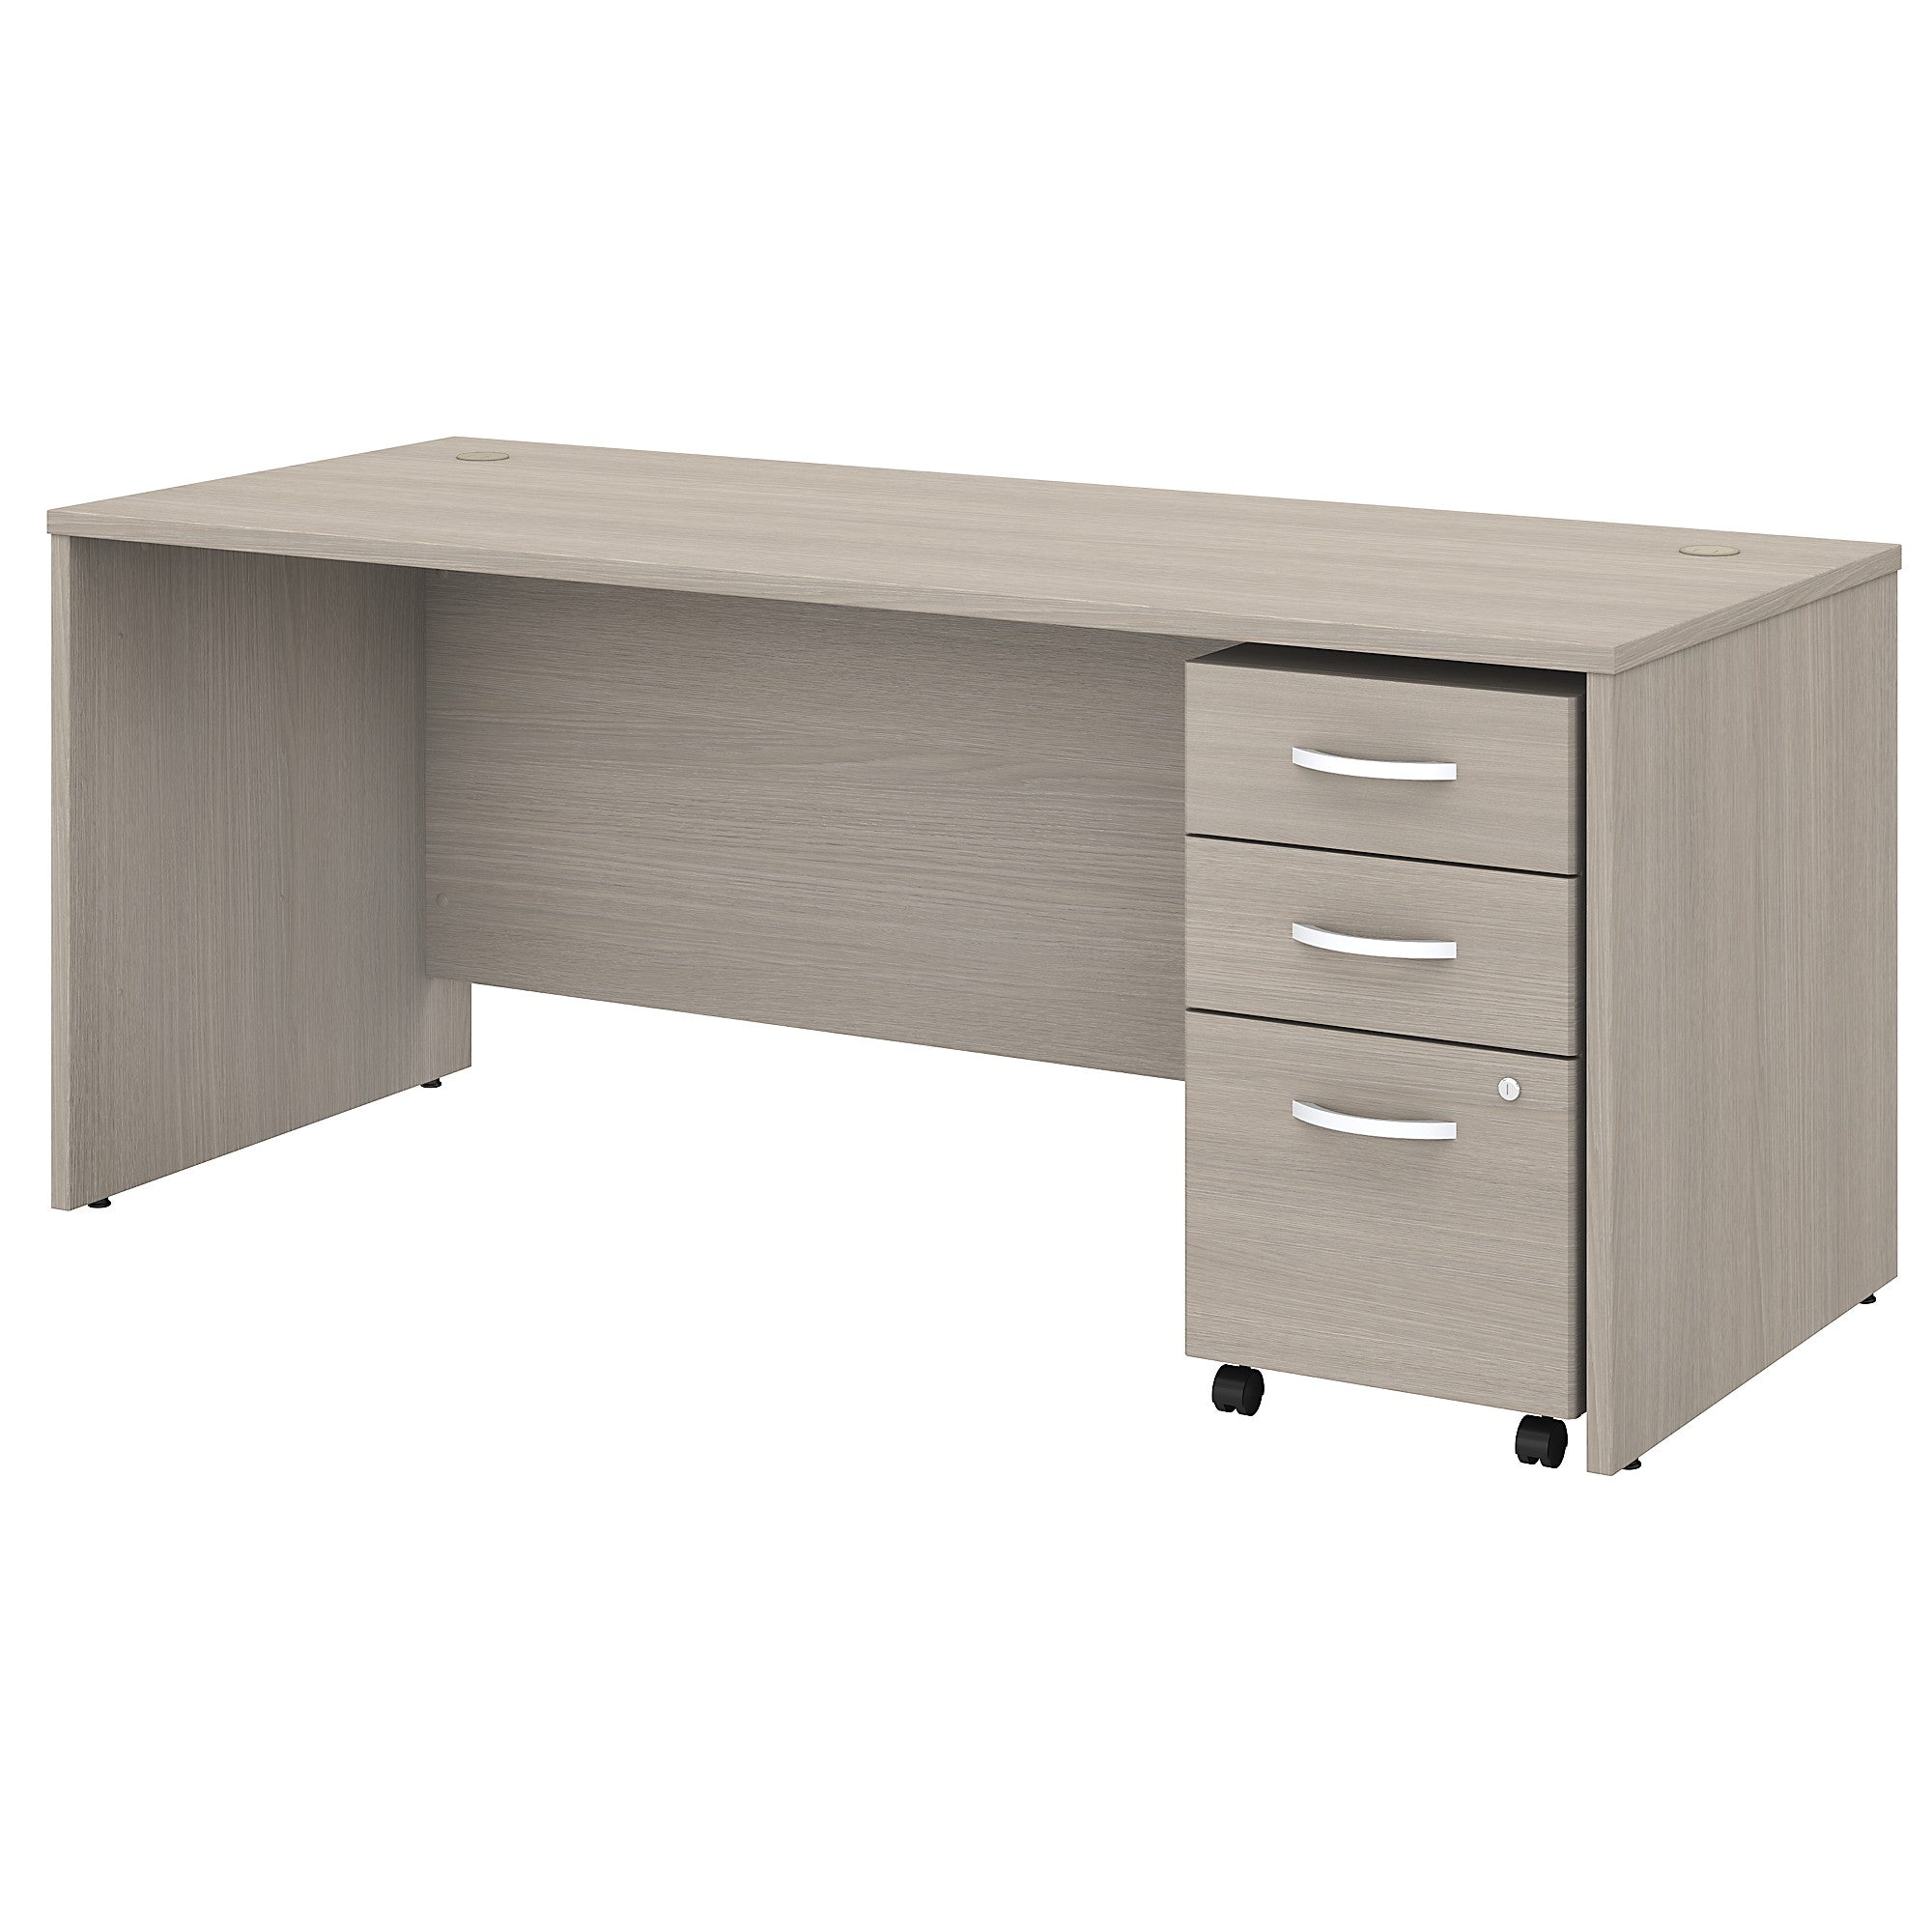 Studio C Office Desk with Mobile File Cabinet- Sand Oak